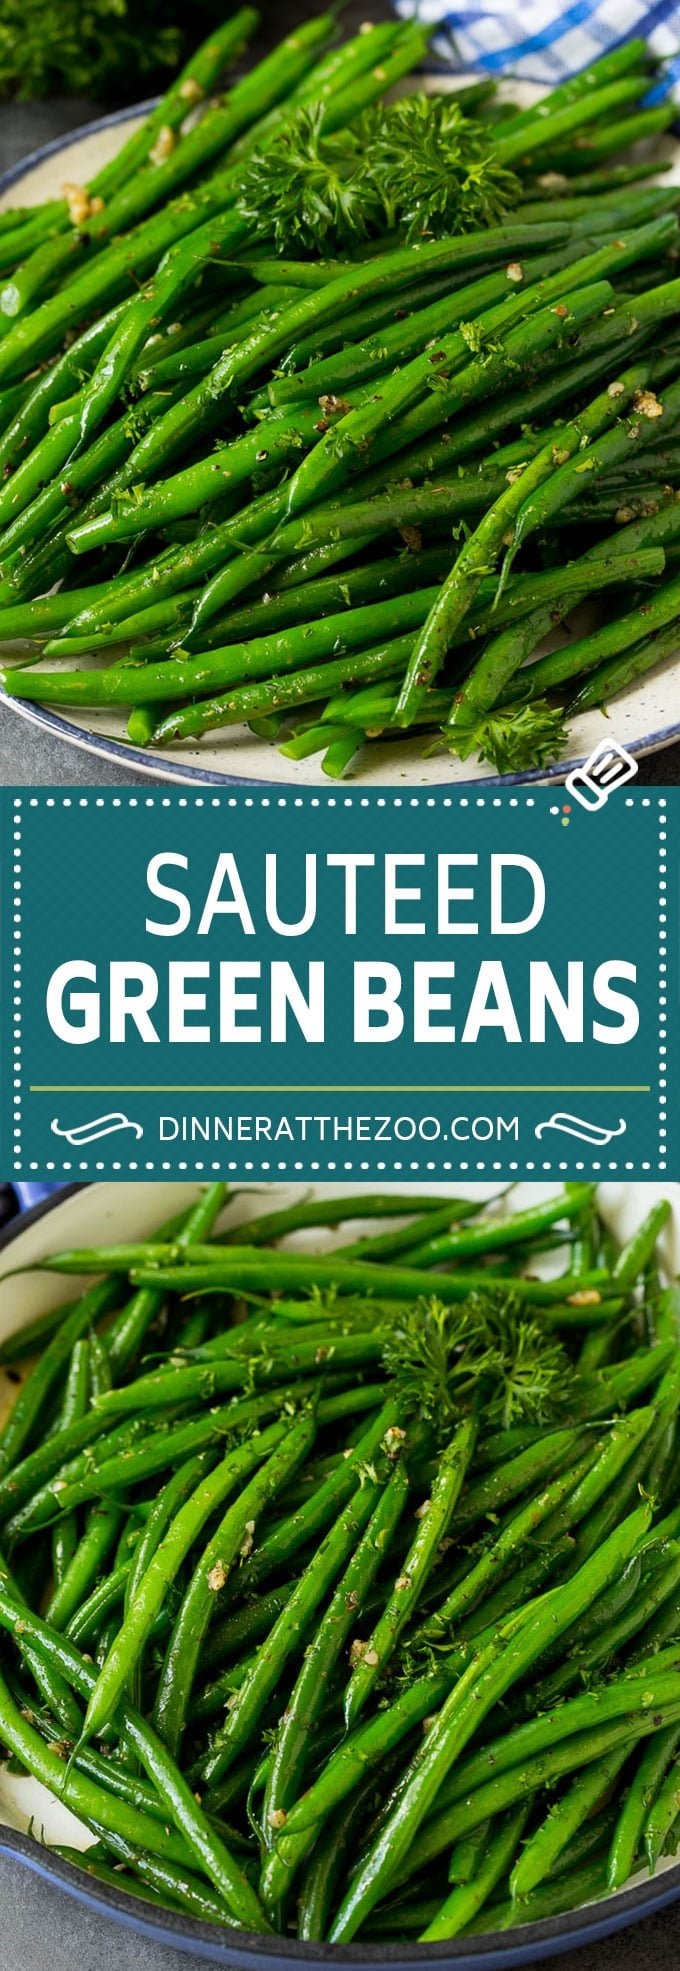 These sauteed green beans are cooked in butter, garlic and an assortment of fresh and dried herbs.